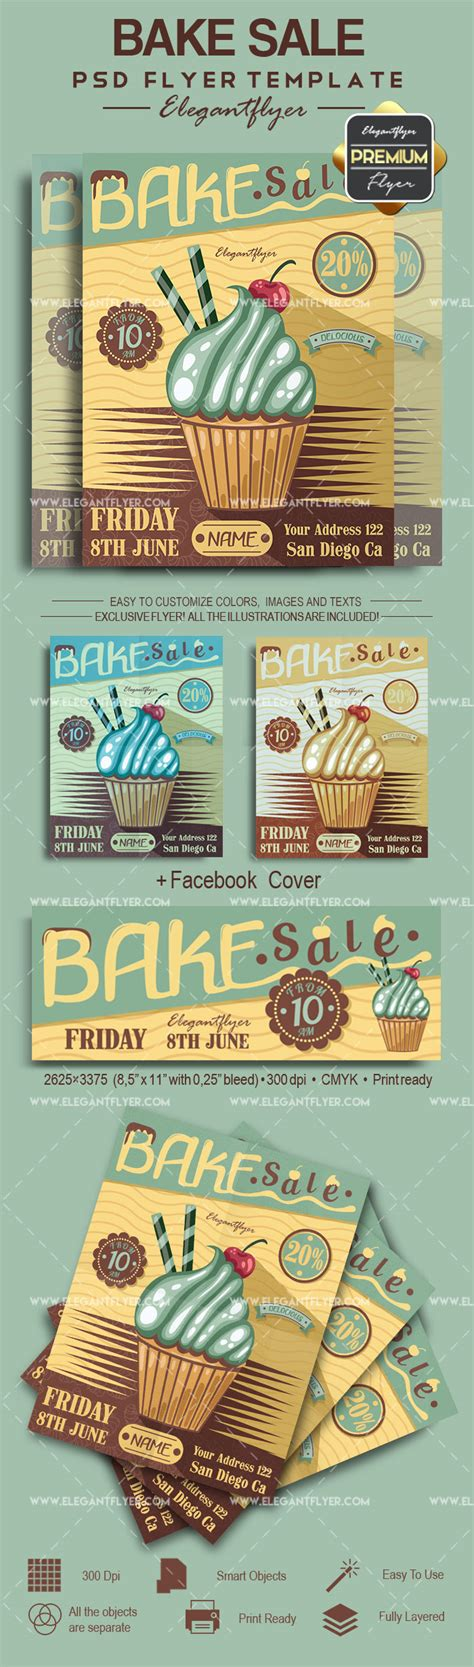 Bake Sale Psd Poster By Elegantflyer Bake Sale Flyer Template